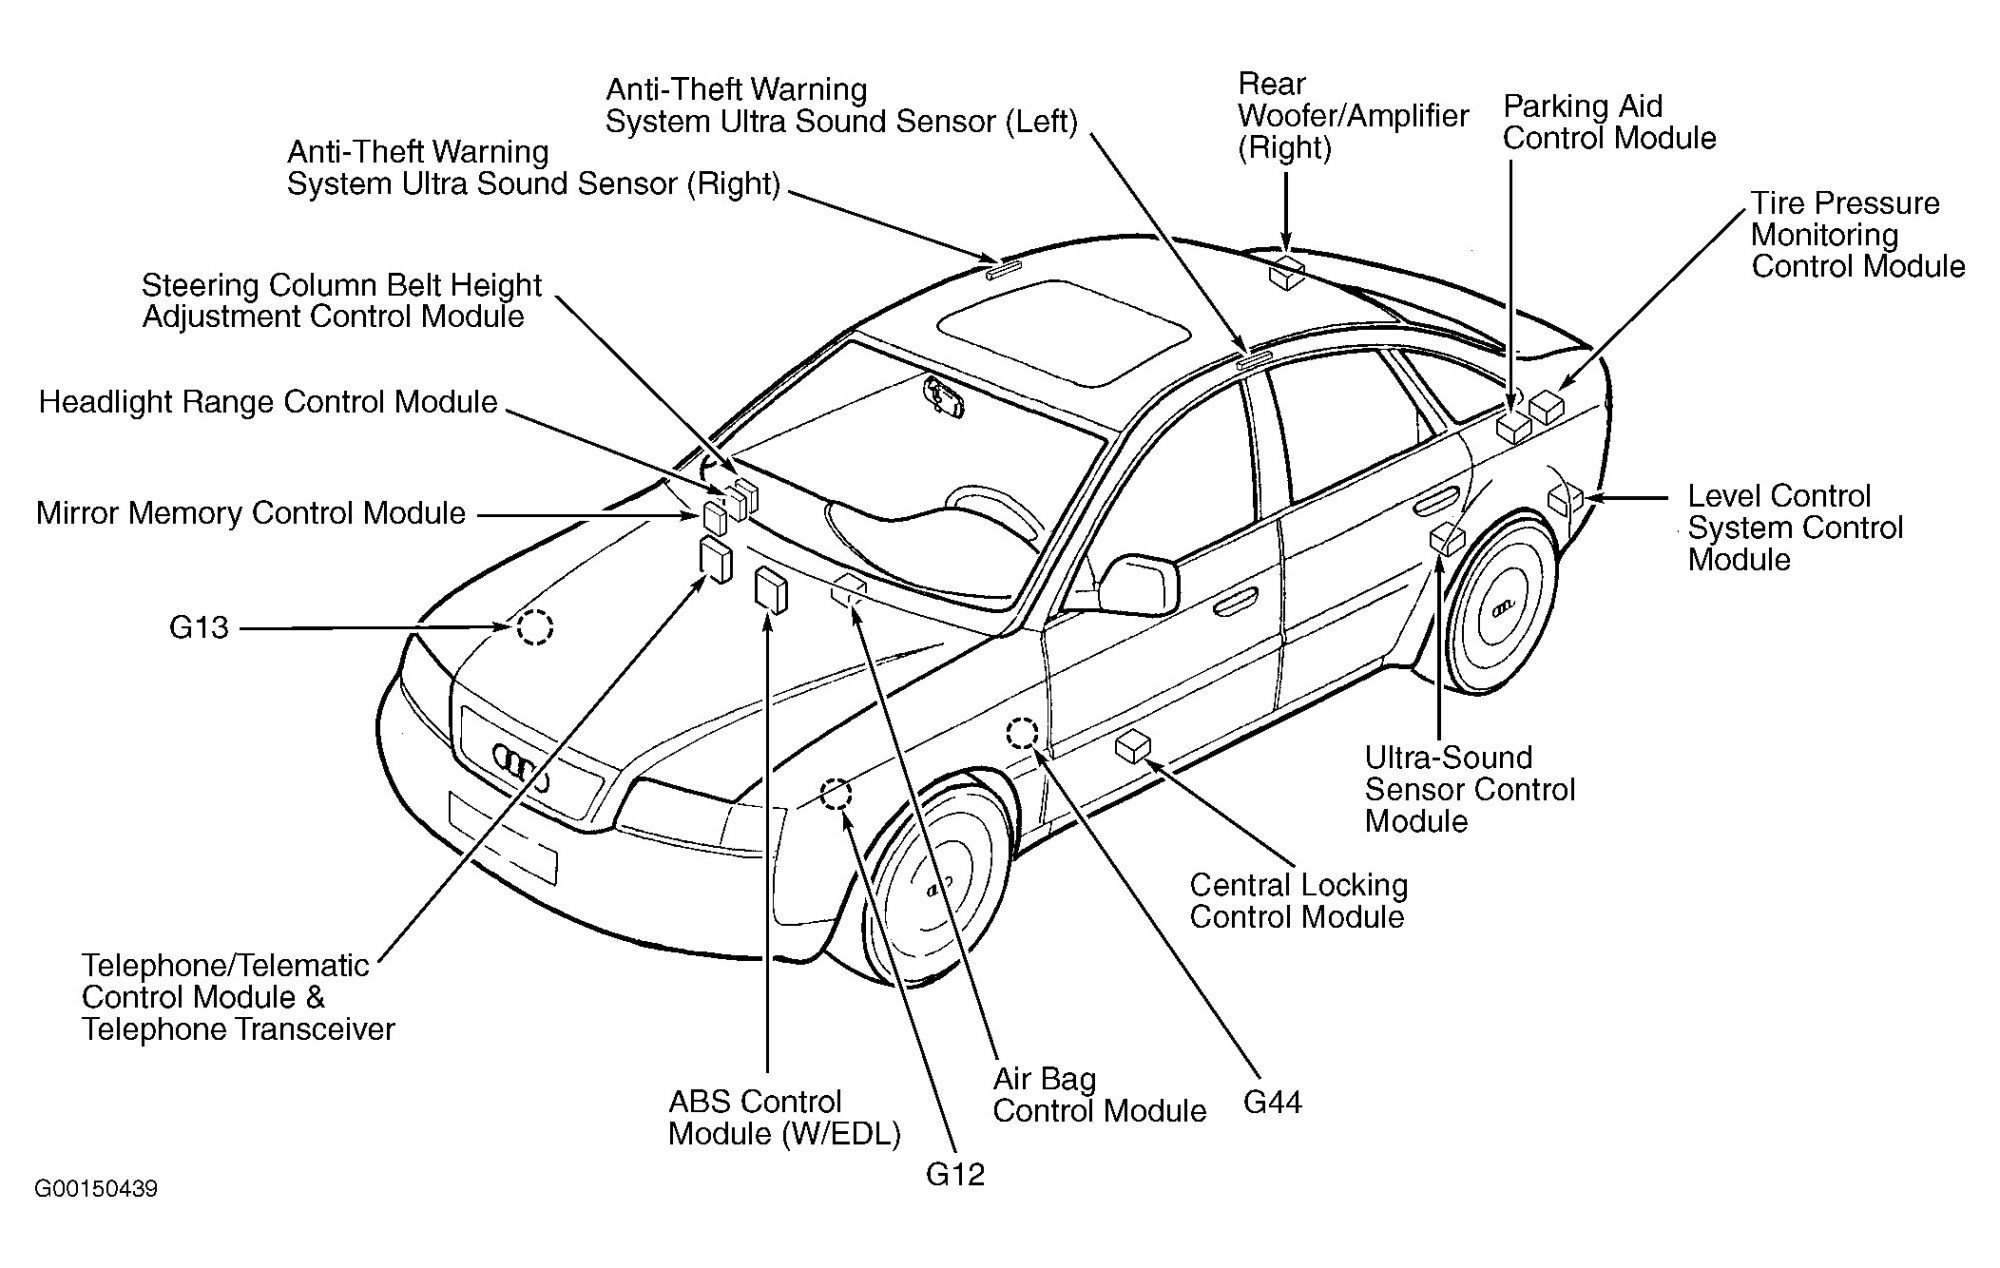 hight resolution of 2002 audi a6 abs diagram wiring diagram expert 2002 audi a6 abs diagram